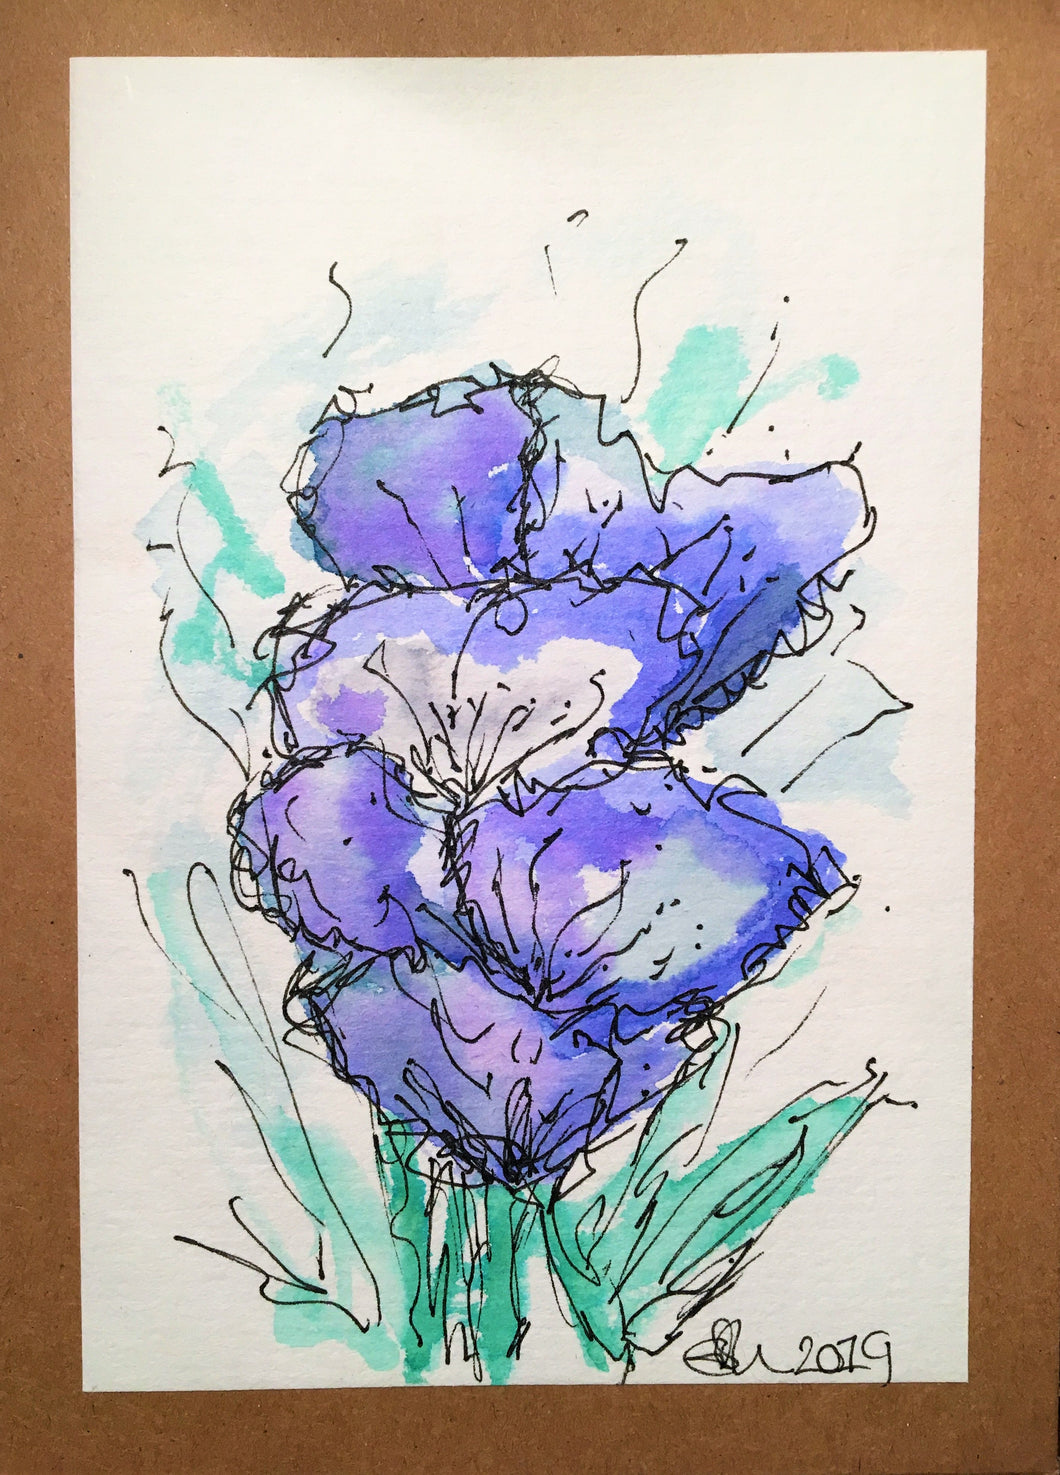 Handpainted Watercolour Greeting Card - Abstract Blue/Purple Flowers Design - eDgE dEsiGn London